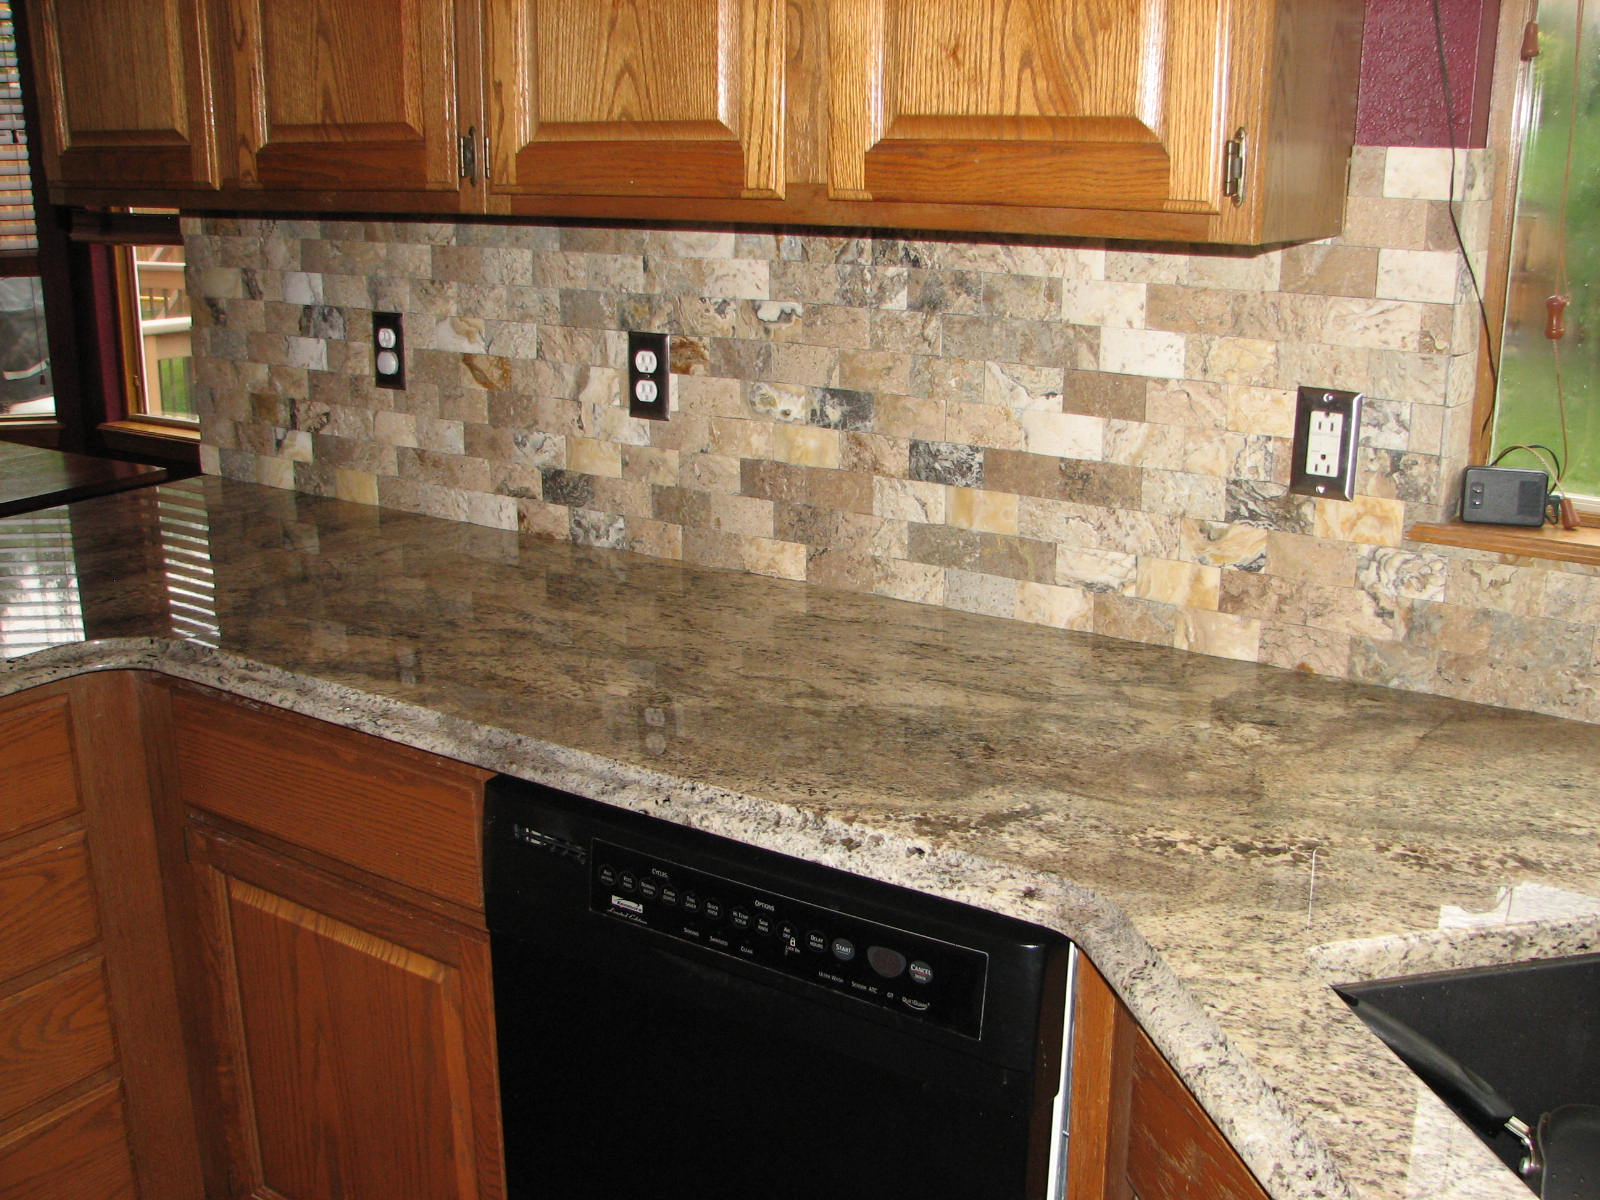 backsplash lighthouse stone kitchen backsplash in golden antico